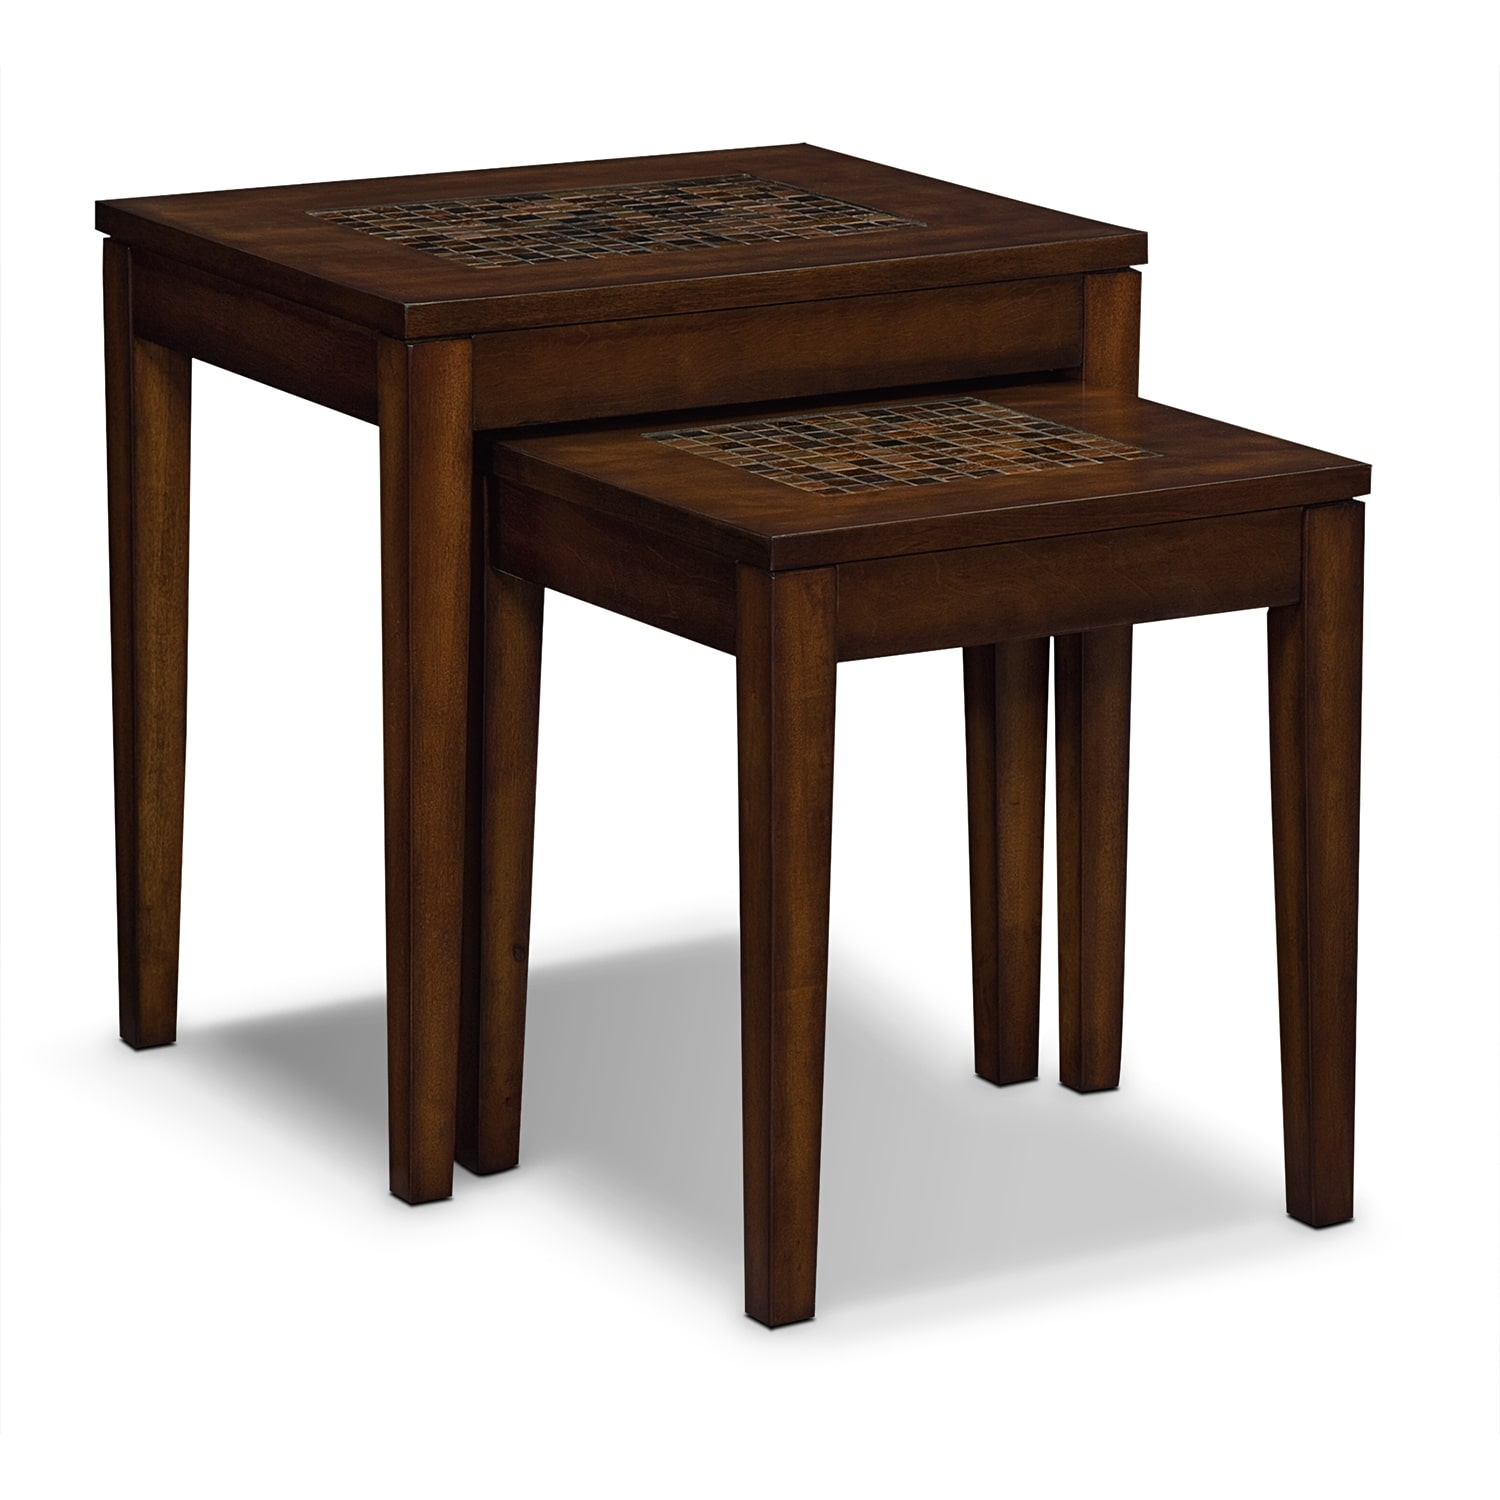 Carson Nesting Tables Brown Value City Furniture And Mattresses - Nesting table with drawer